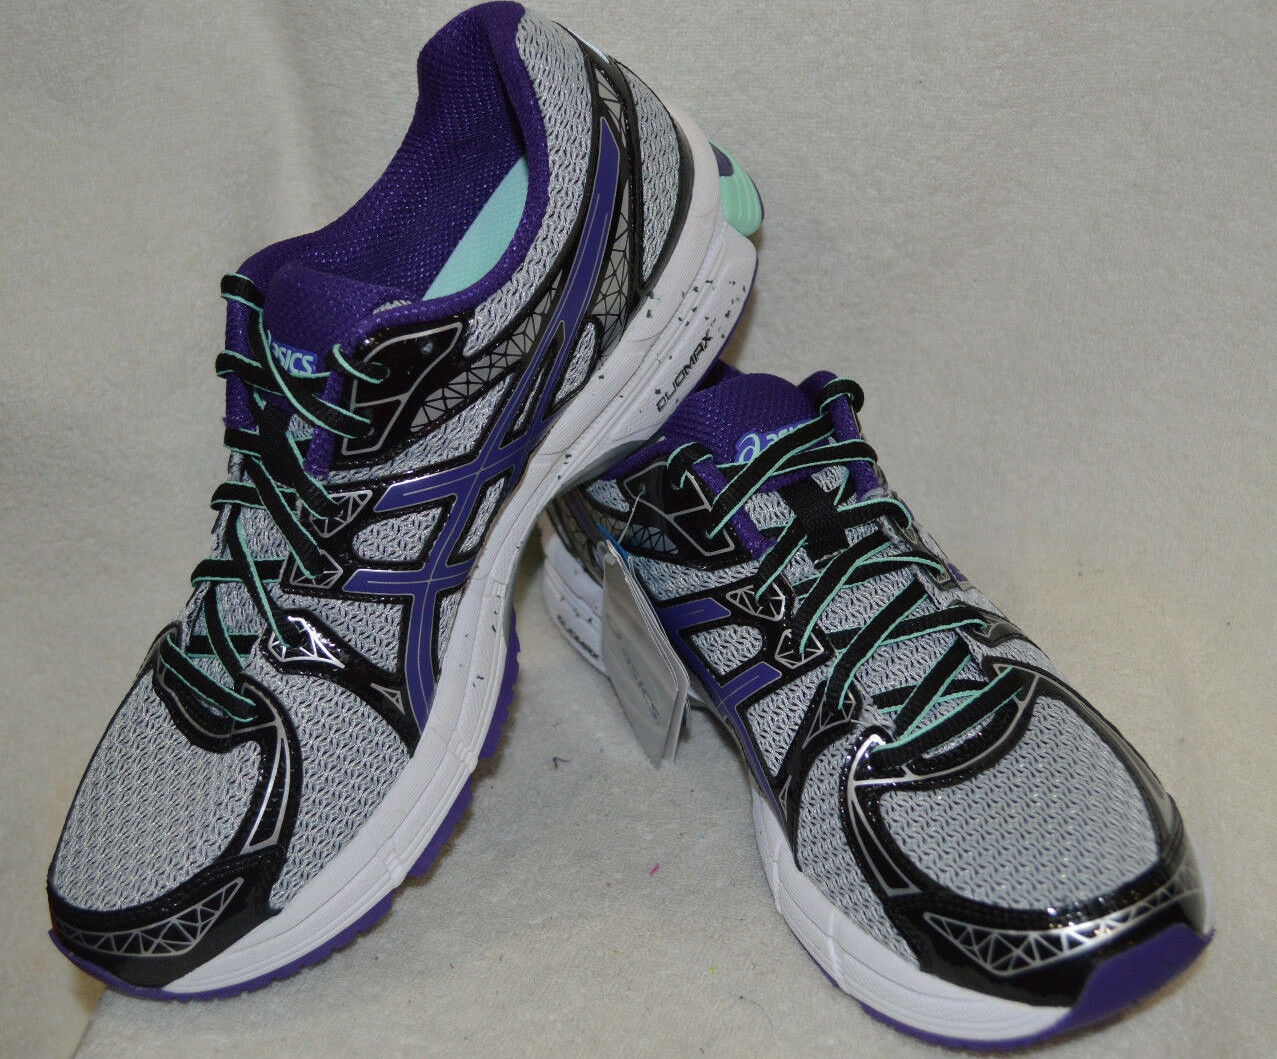 ASICS GEL-Exalt 2 Gray/Purple/Beach Women's Running Shoes - Comfortable The latest discount shoes for men and women